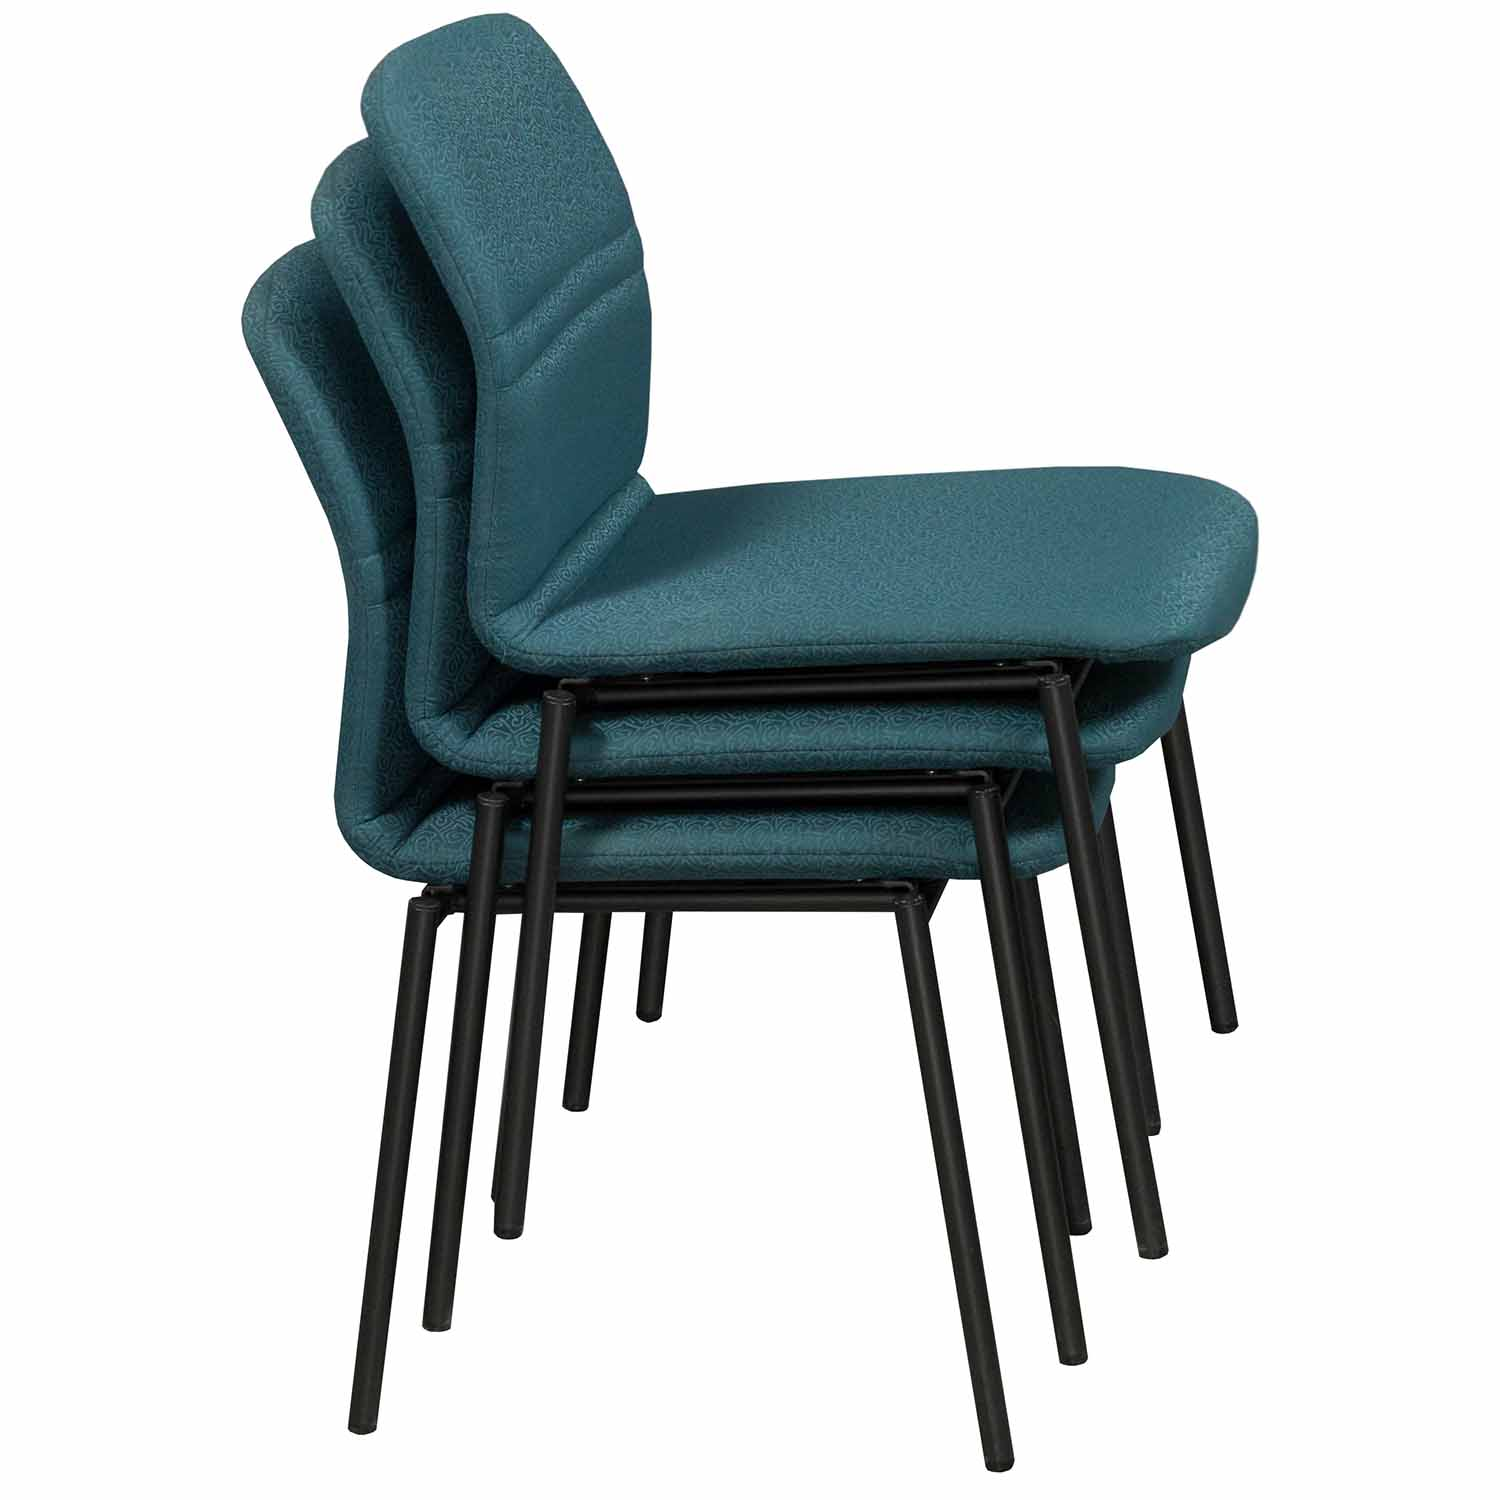 teal computer chair sport brella beach stylex bounce used stack national office